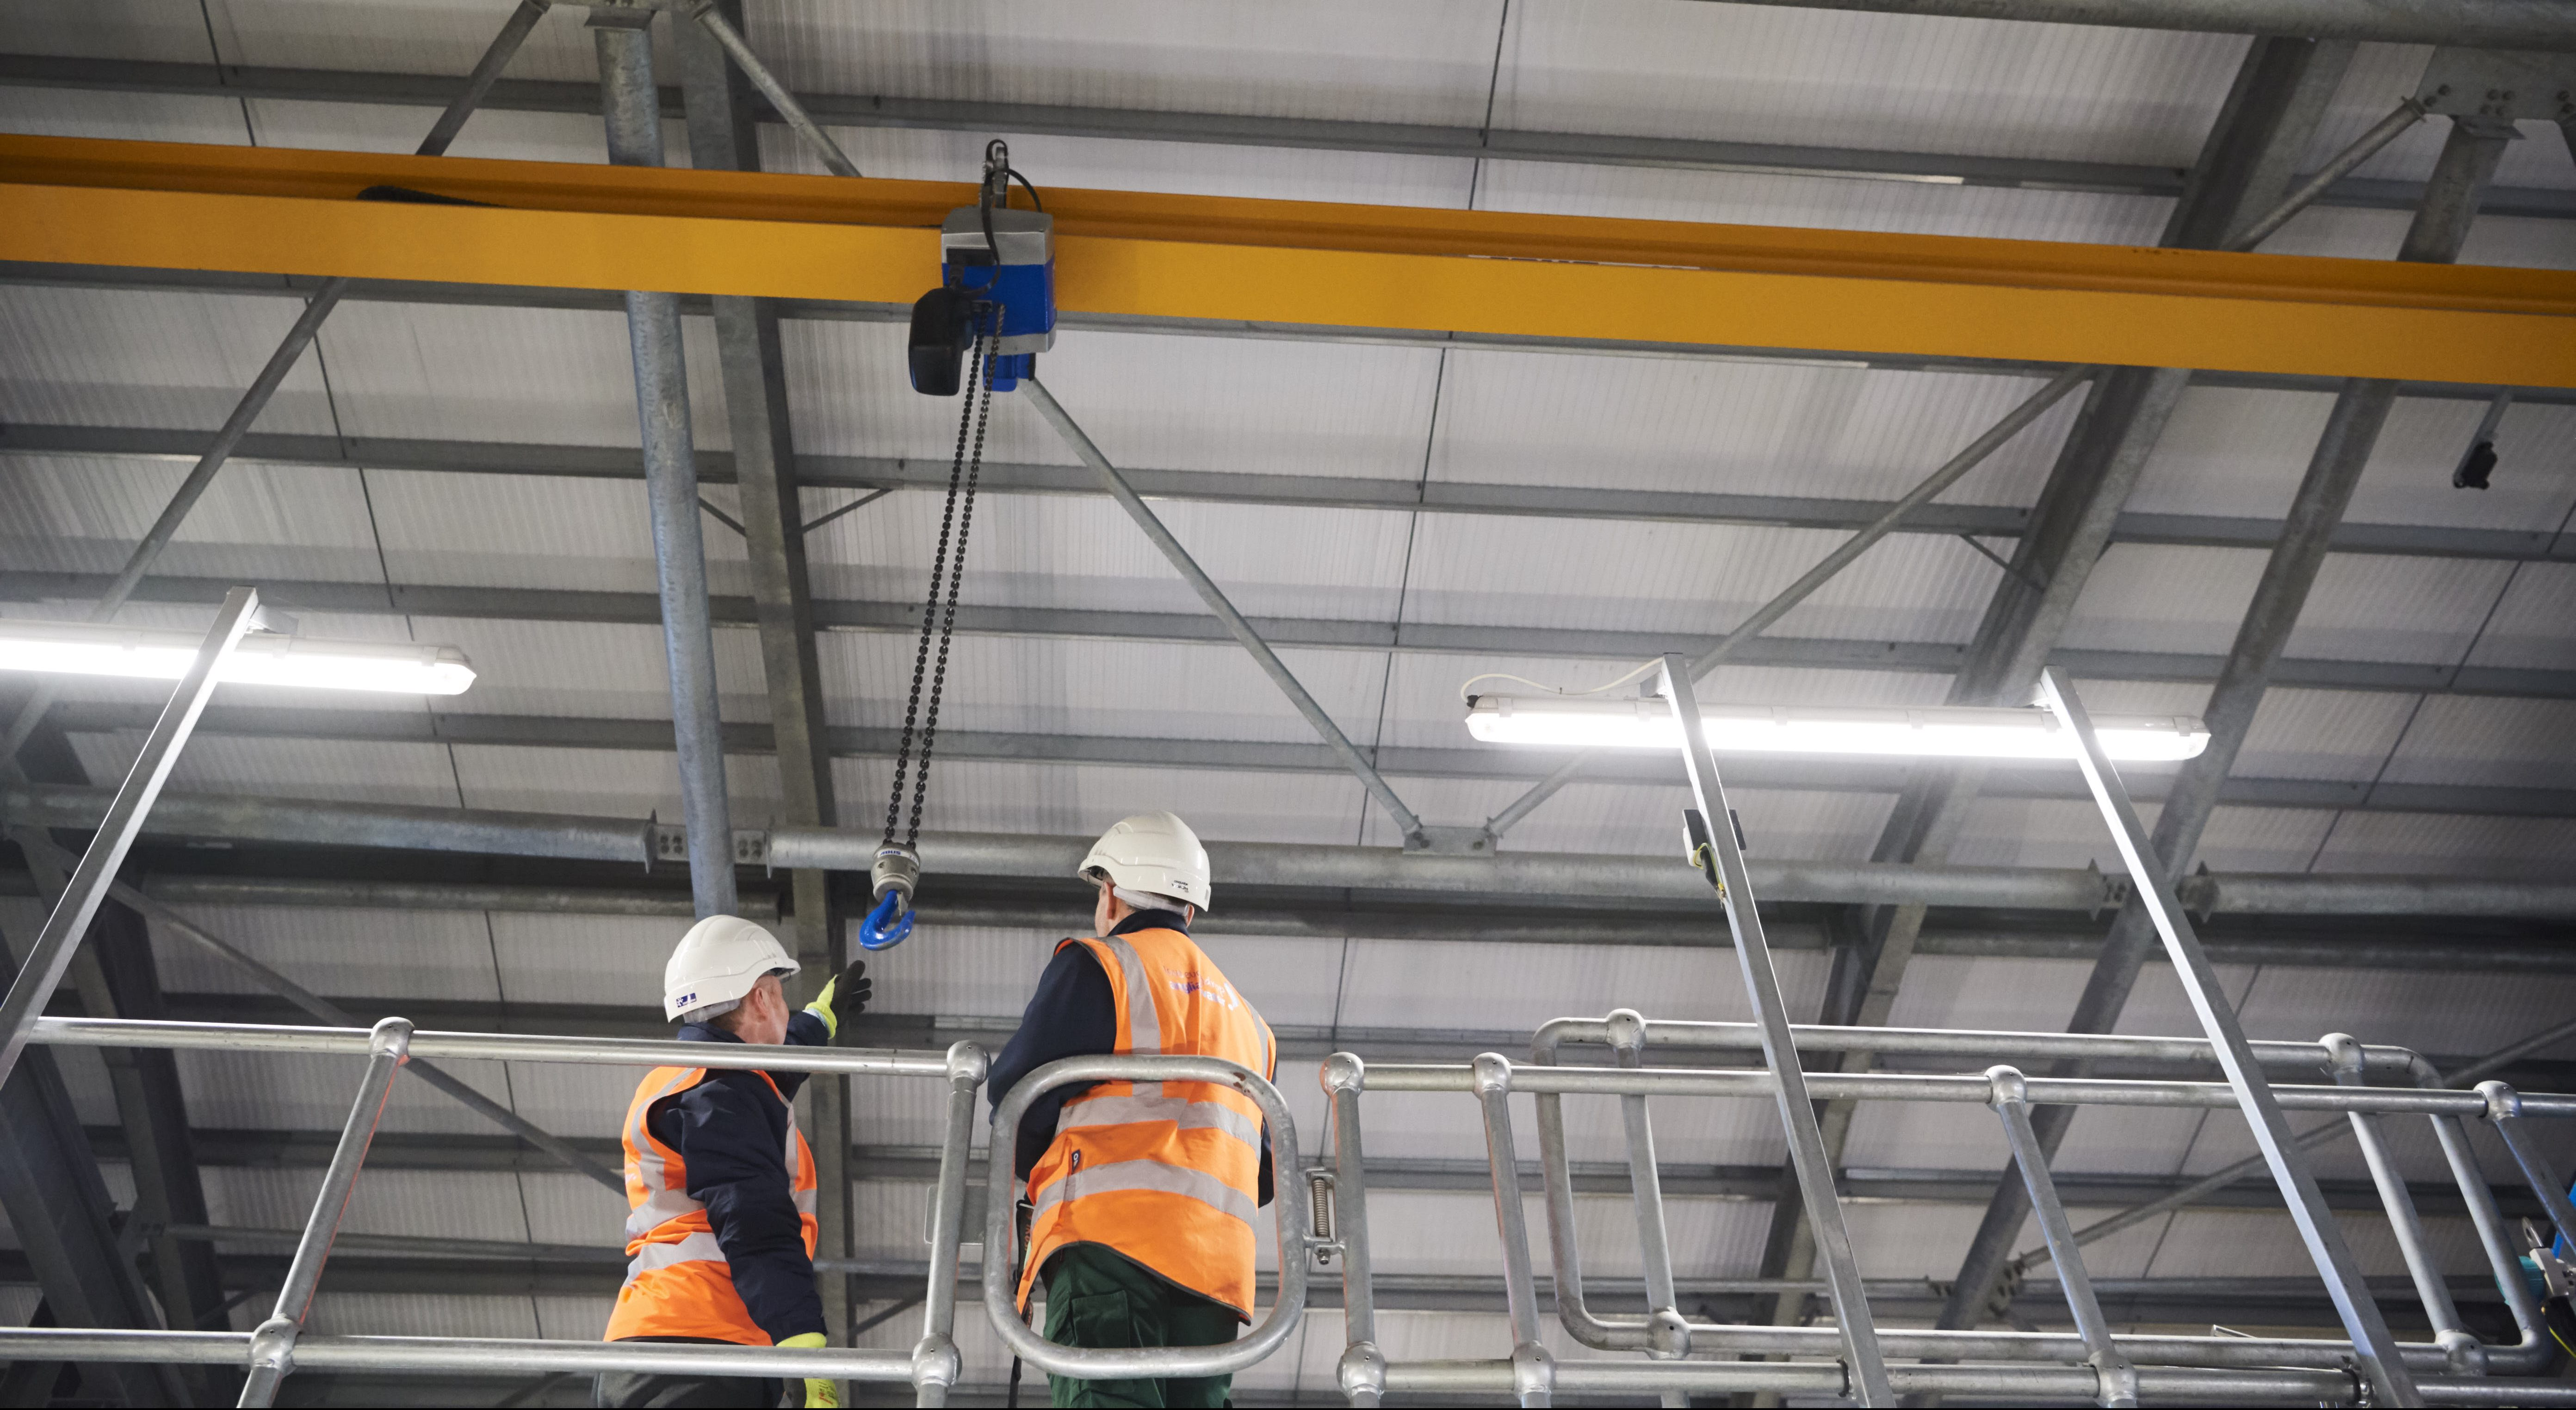 Shot from below of two males in high vis jackets and hard hats reaching from a hook on a crane